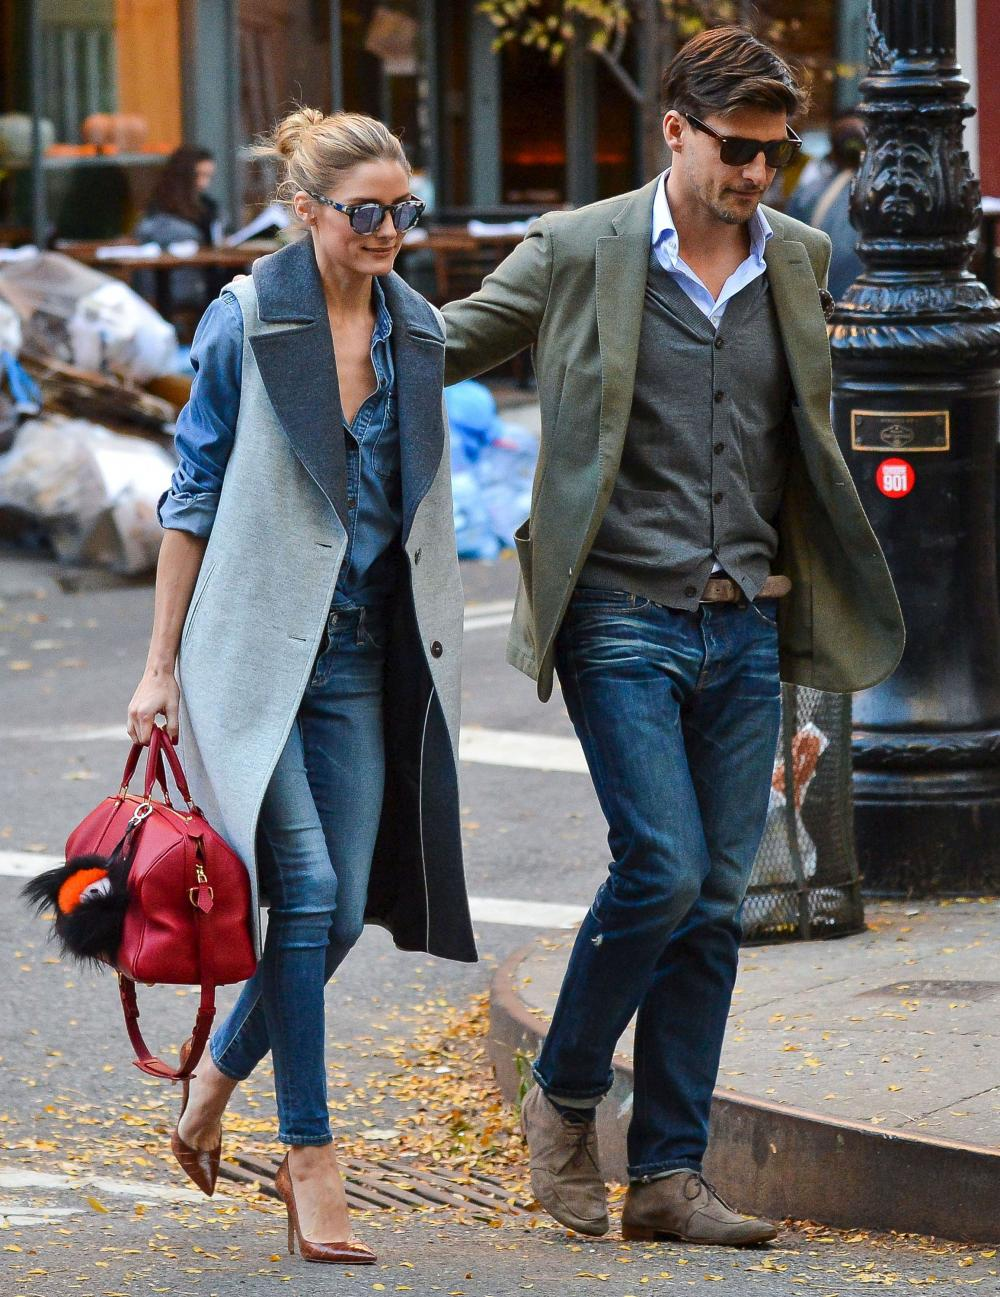 The best outfits for couples to shine this fall